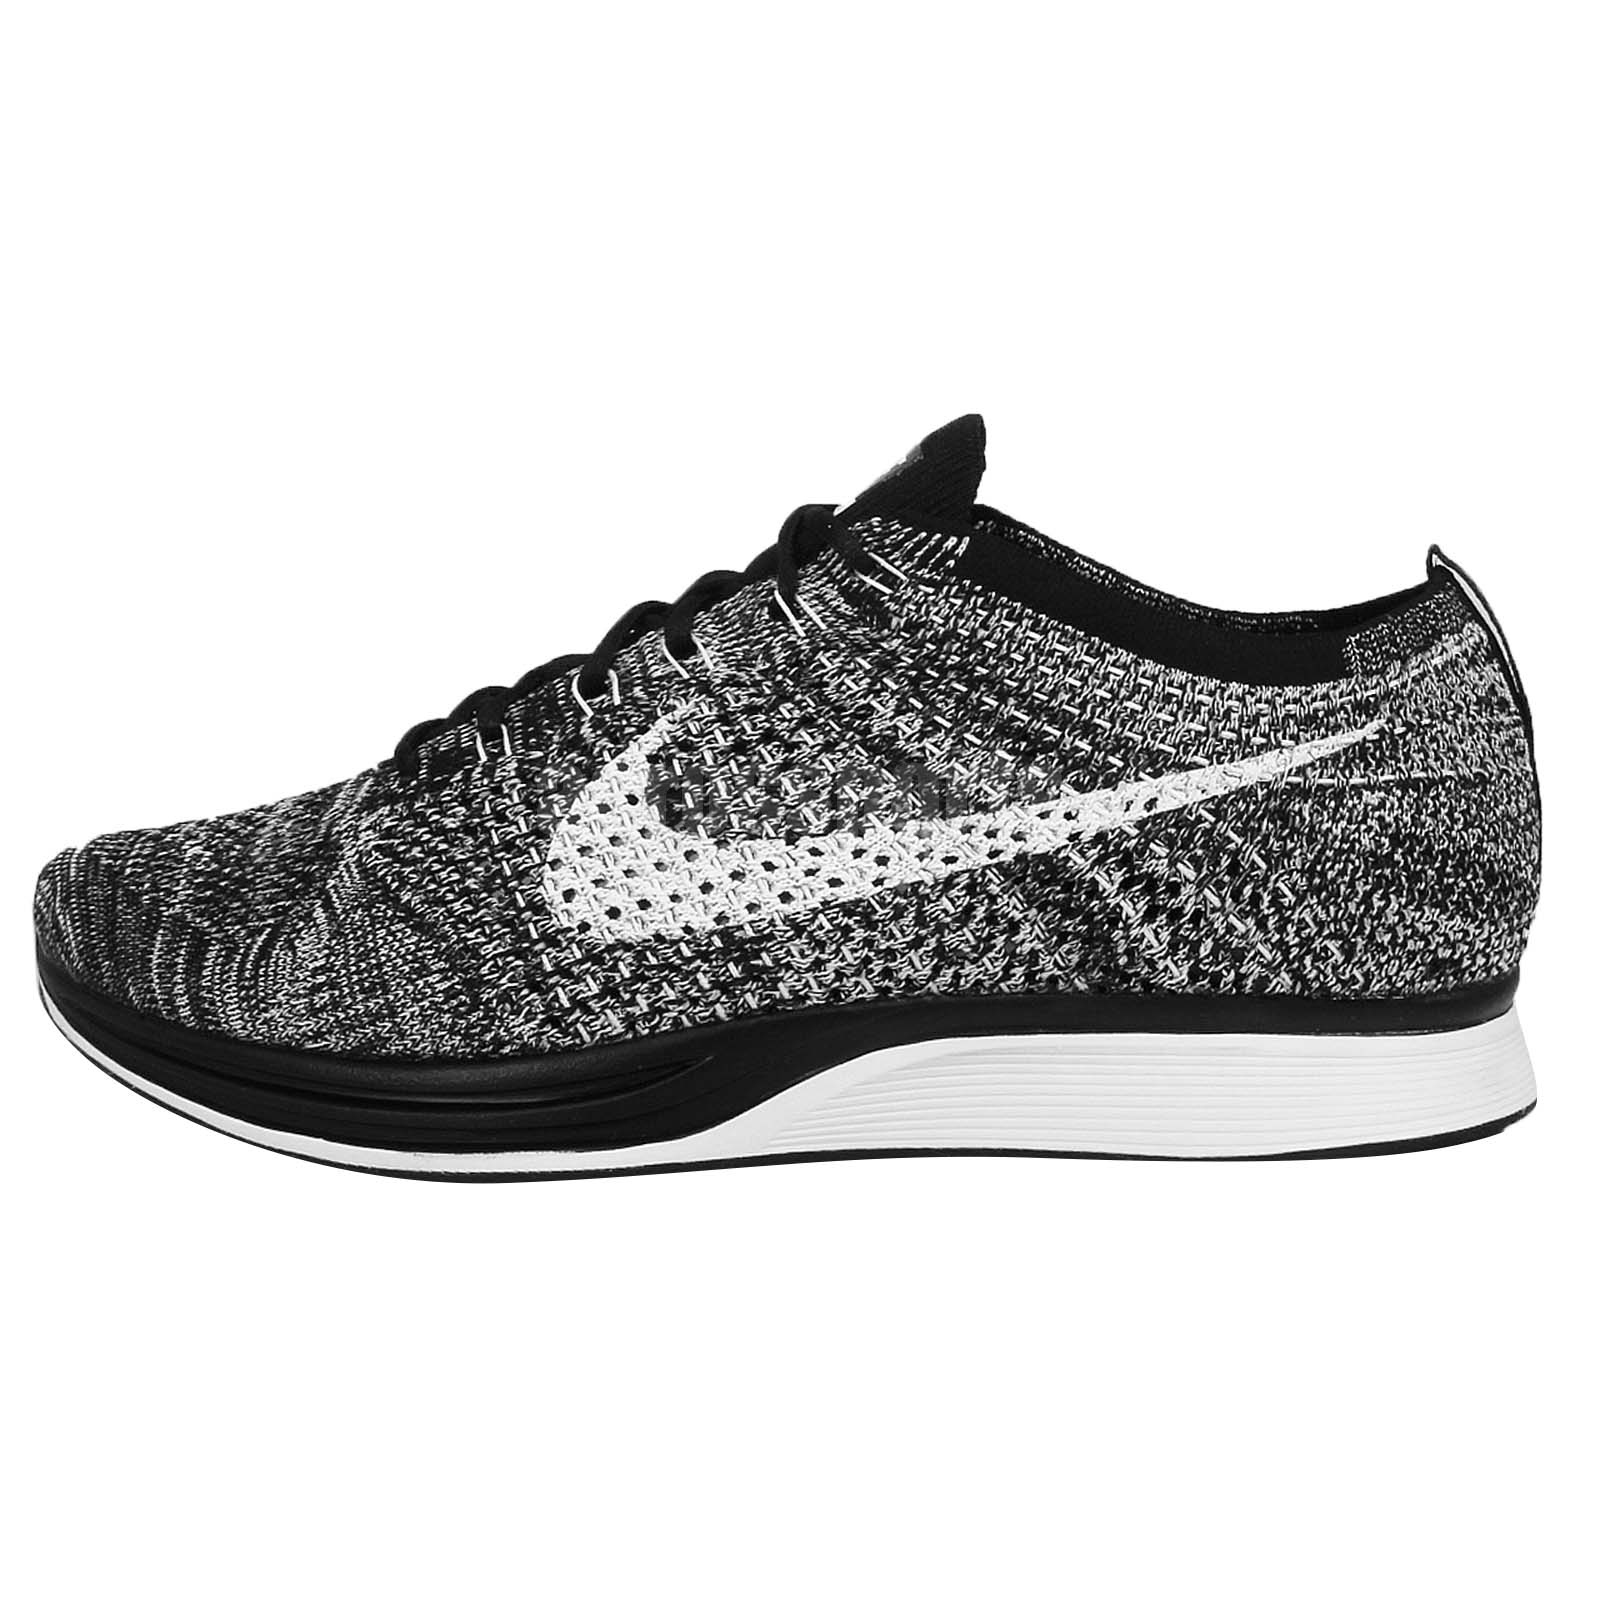 nike flyknit racer cookies cream oreo black white mens. Black Bedroom Furniture Sets. Home Design Ideas